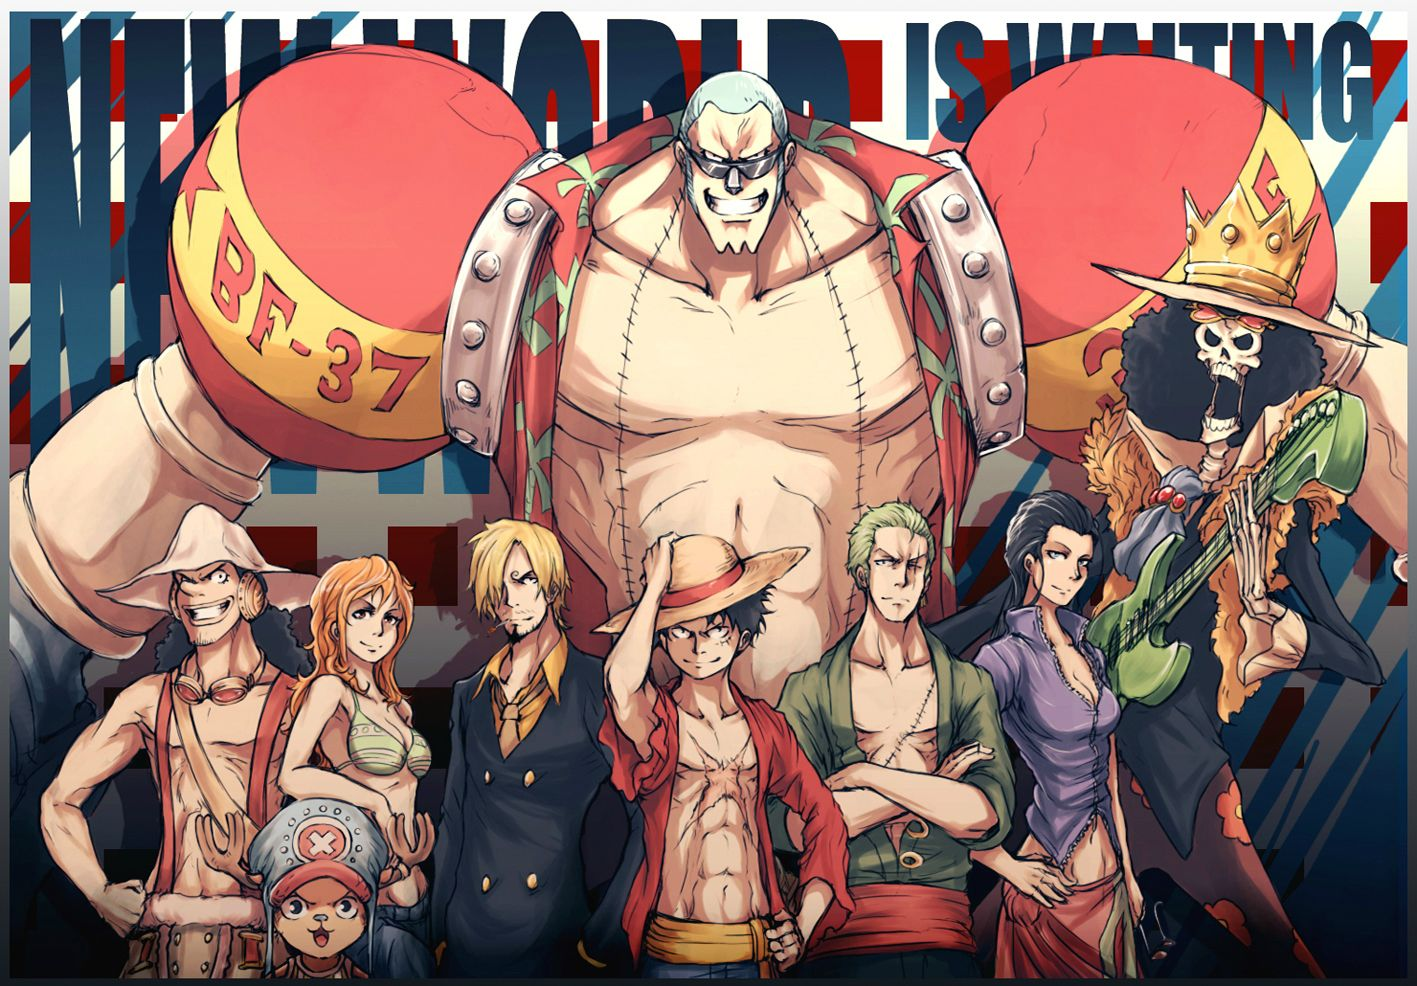 Free Download HD Wallpaper for Desktop: One Piece New ...